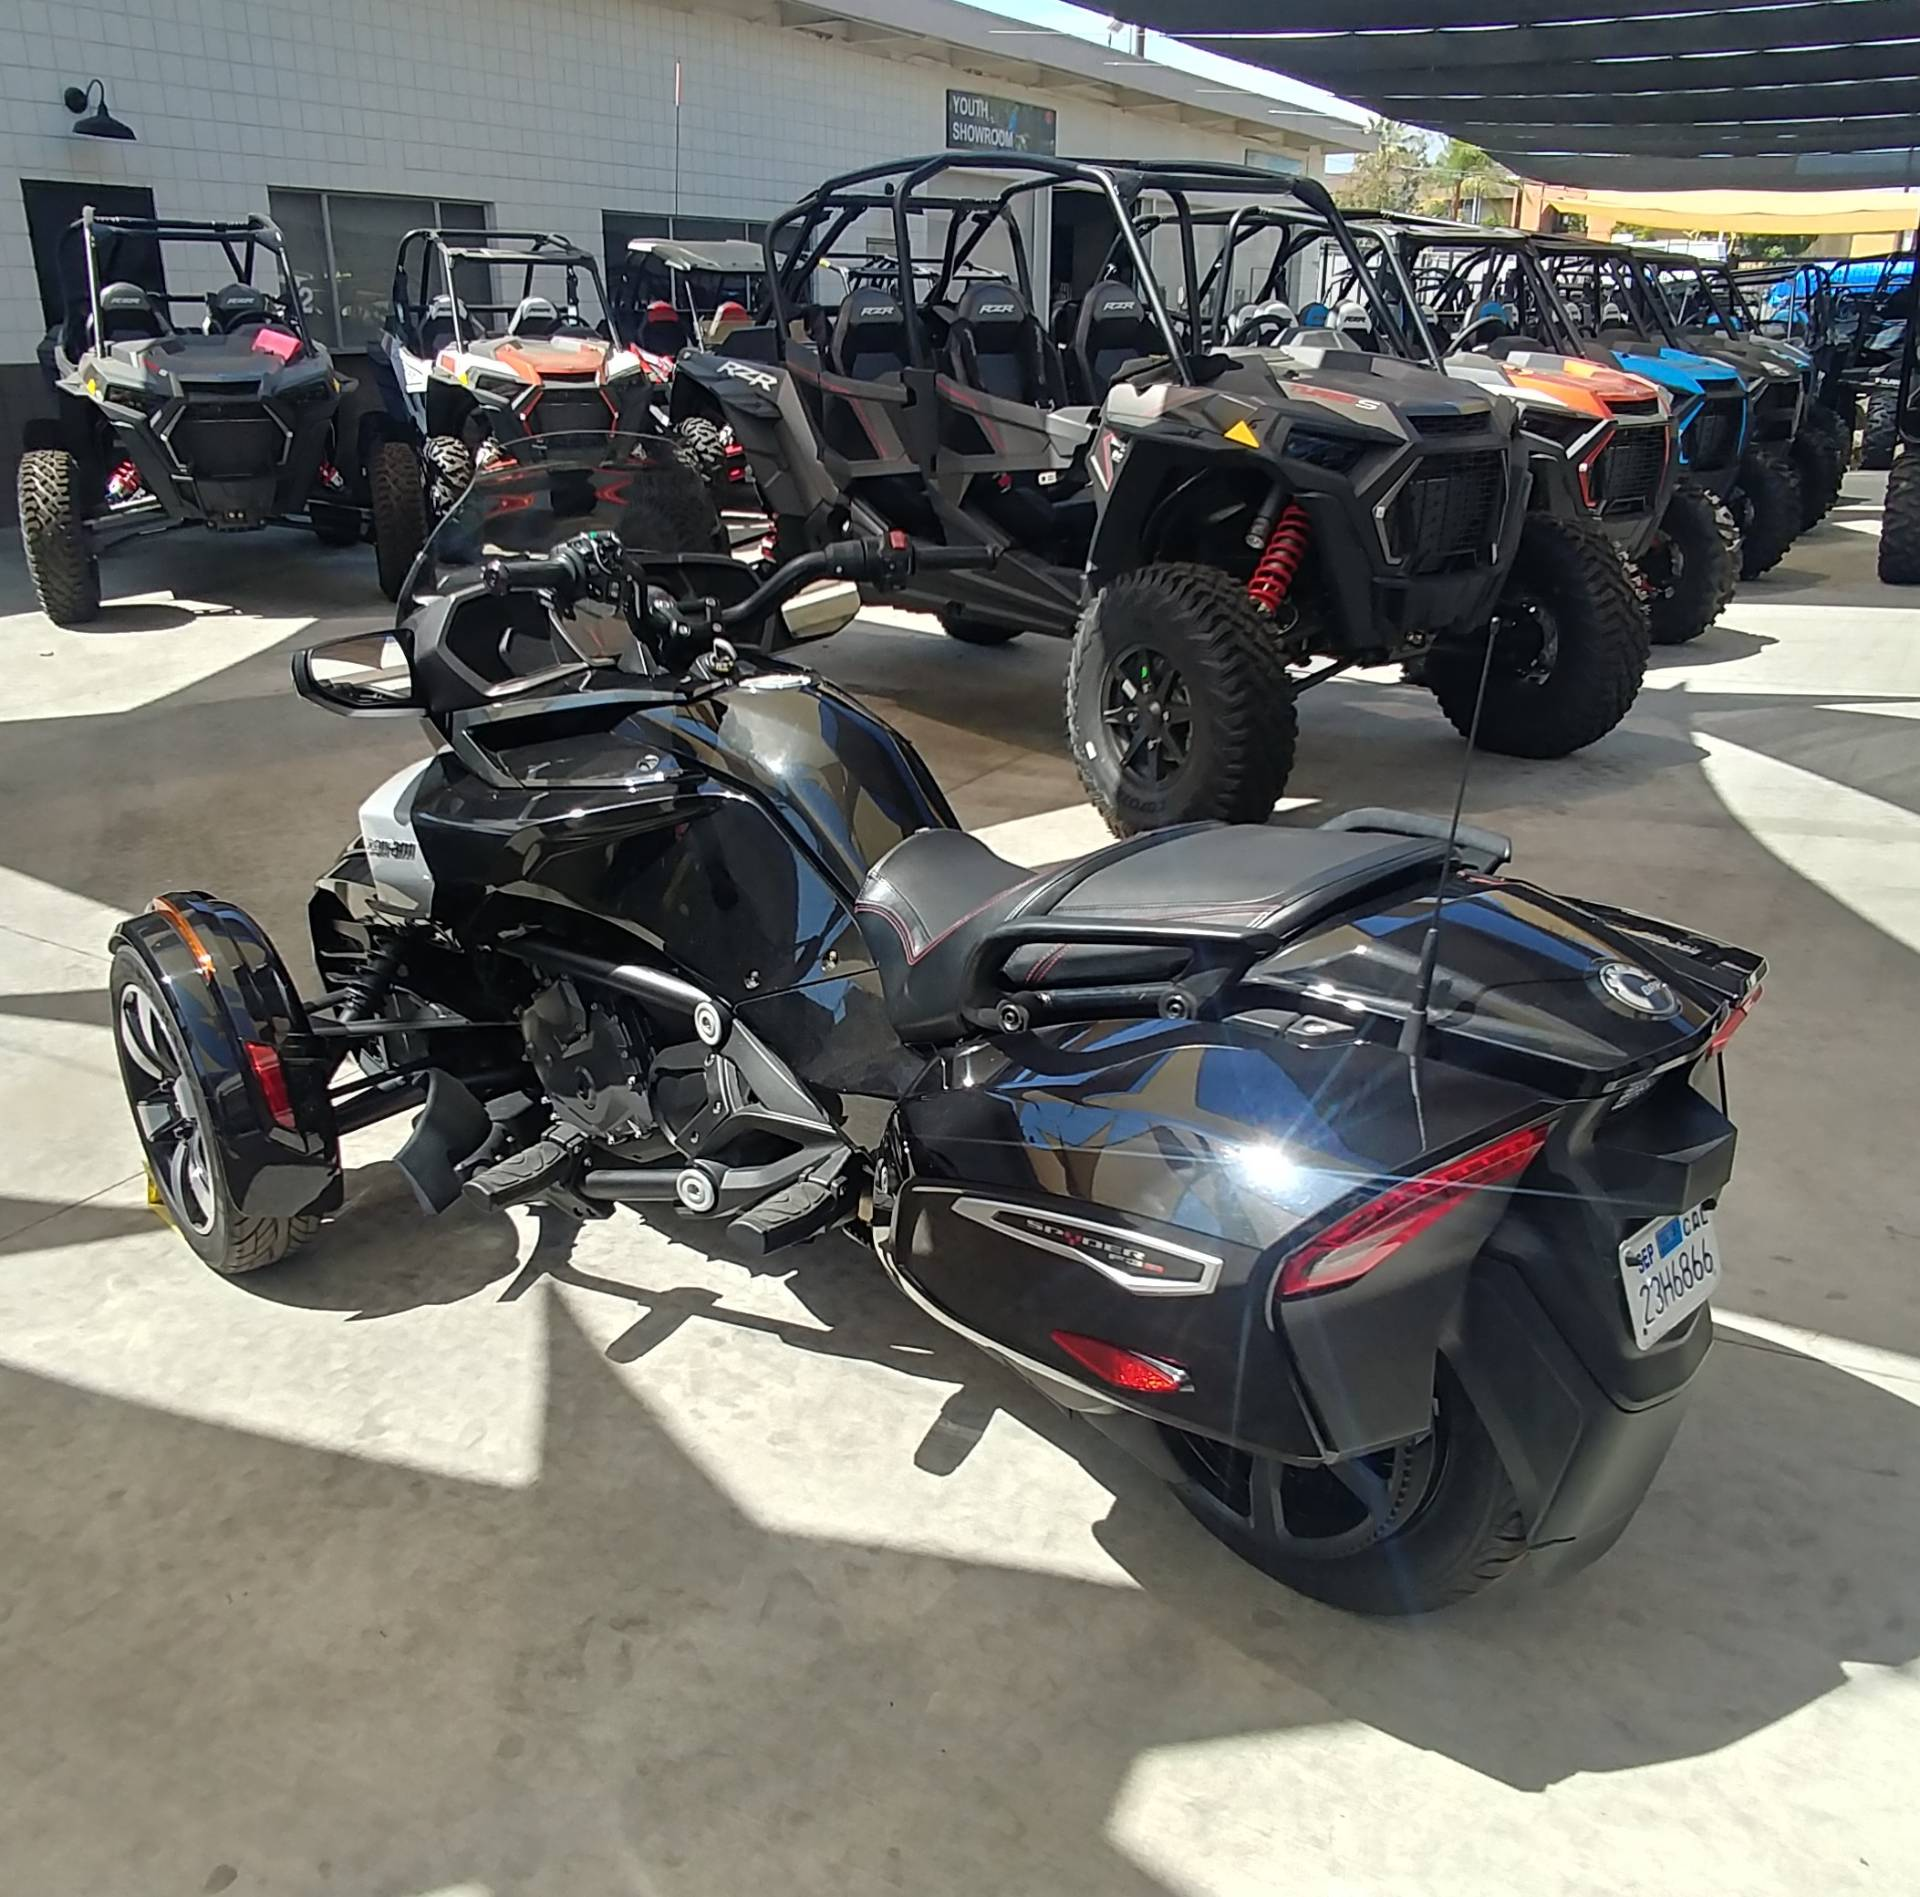 2016 Can-Am Spyder F3-T SE6 w/ Audio System in Ontario, California - Photo 8